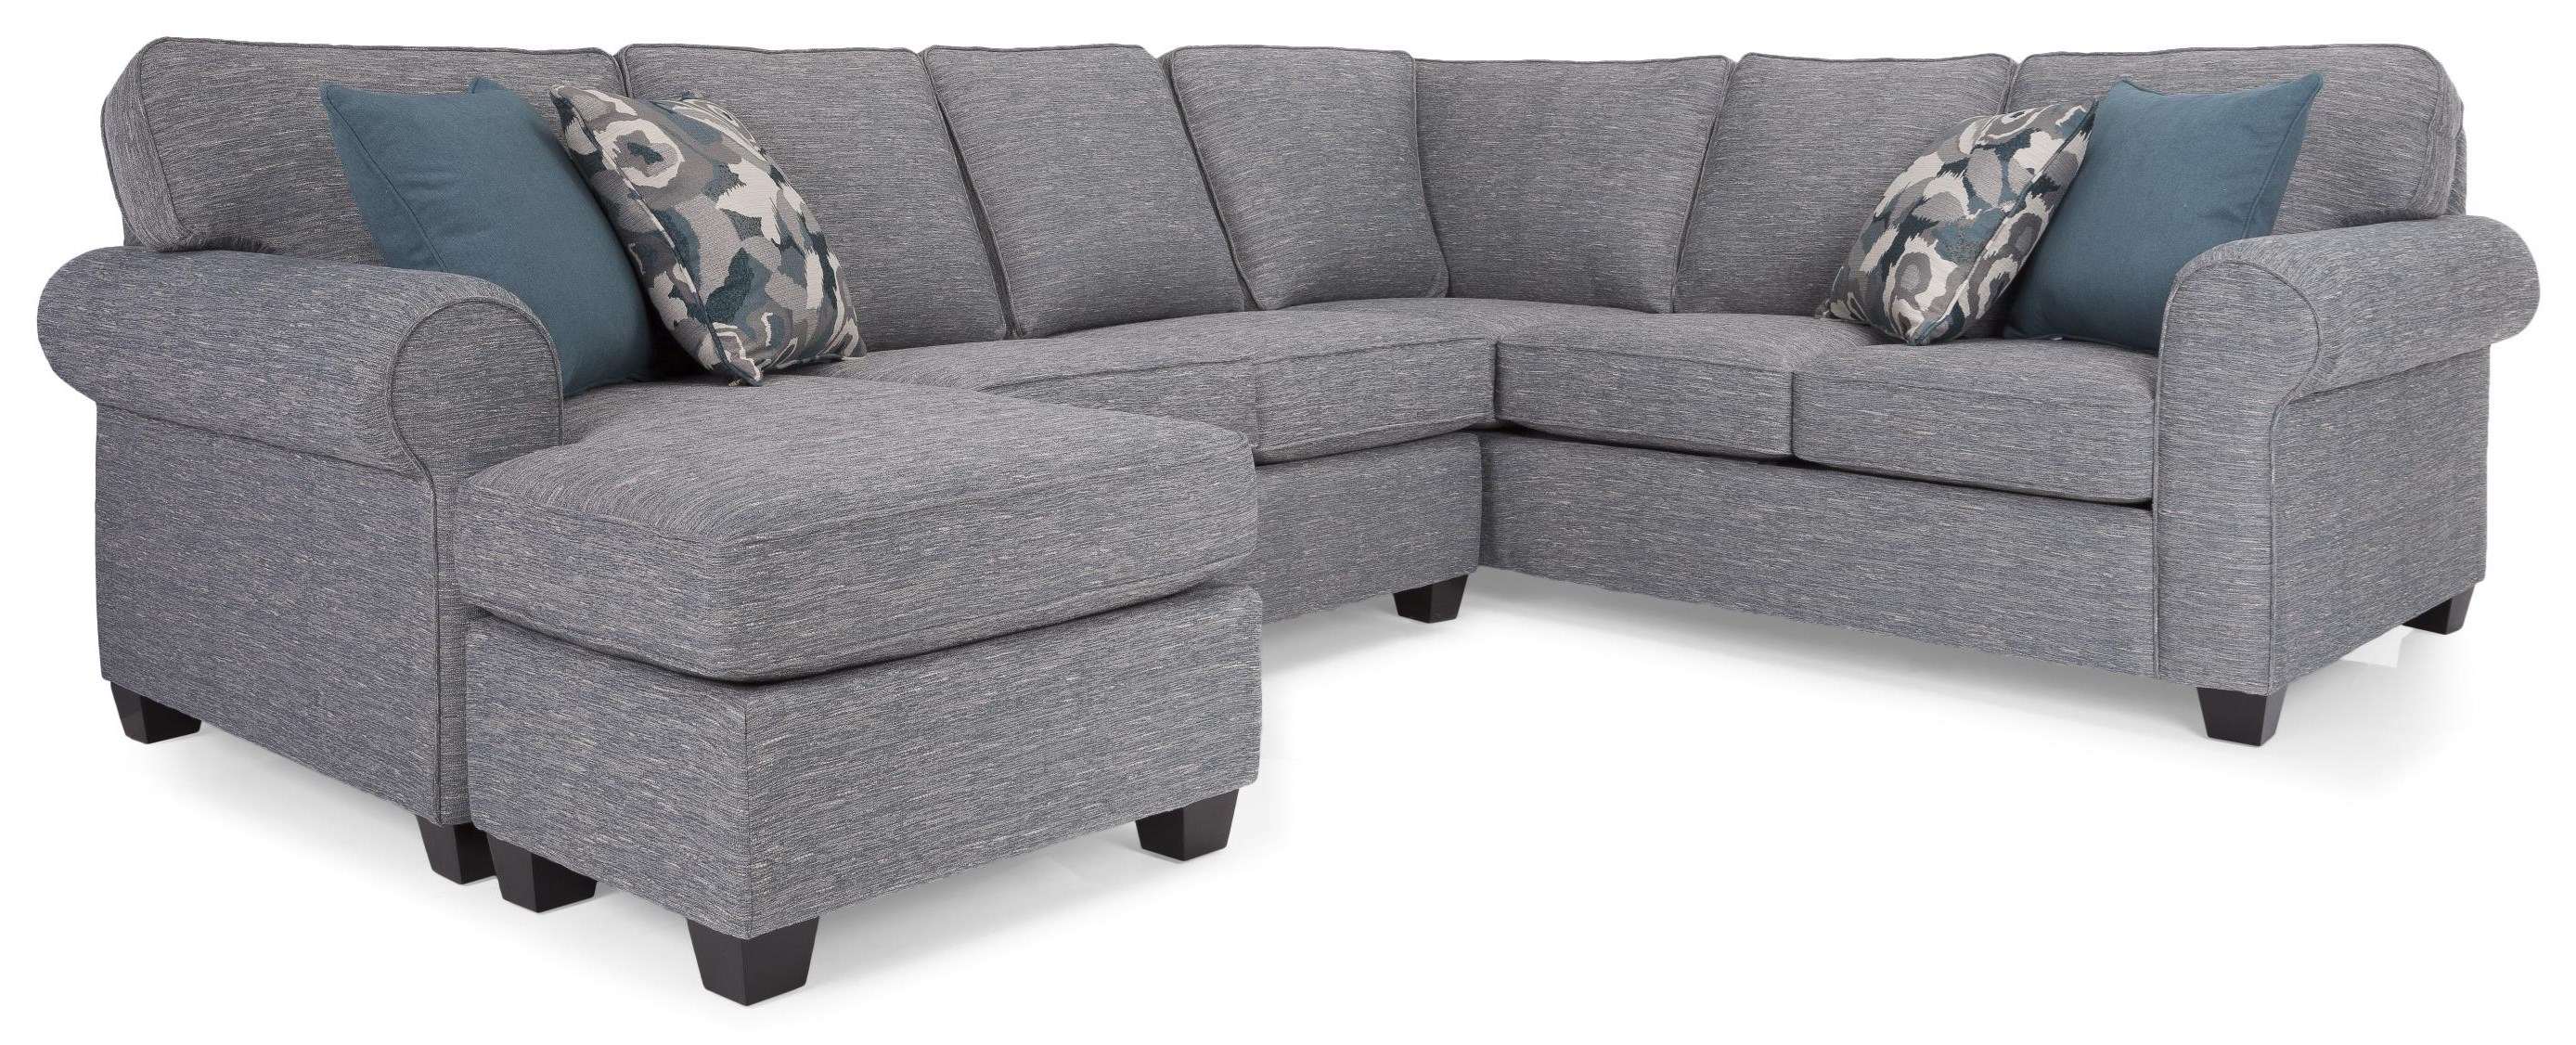 Saxon Sectional by Taelor Designs at Bennett's Furniture and Mattresses